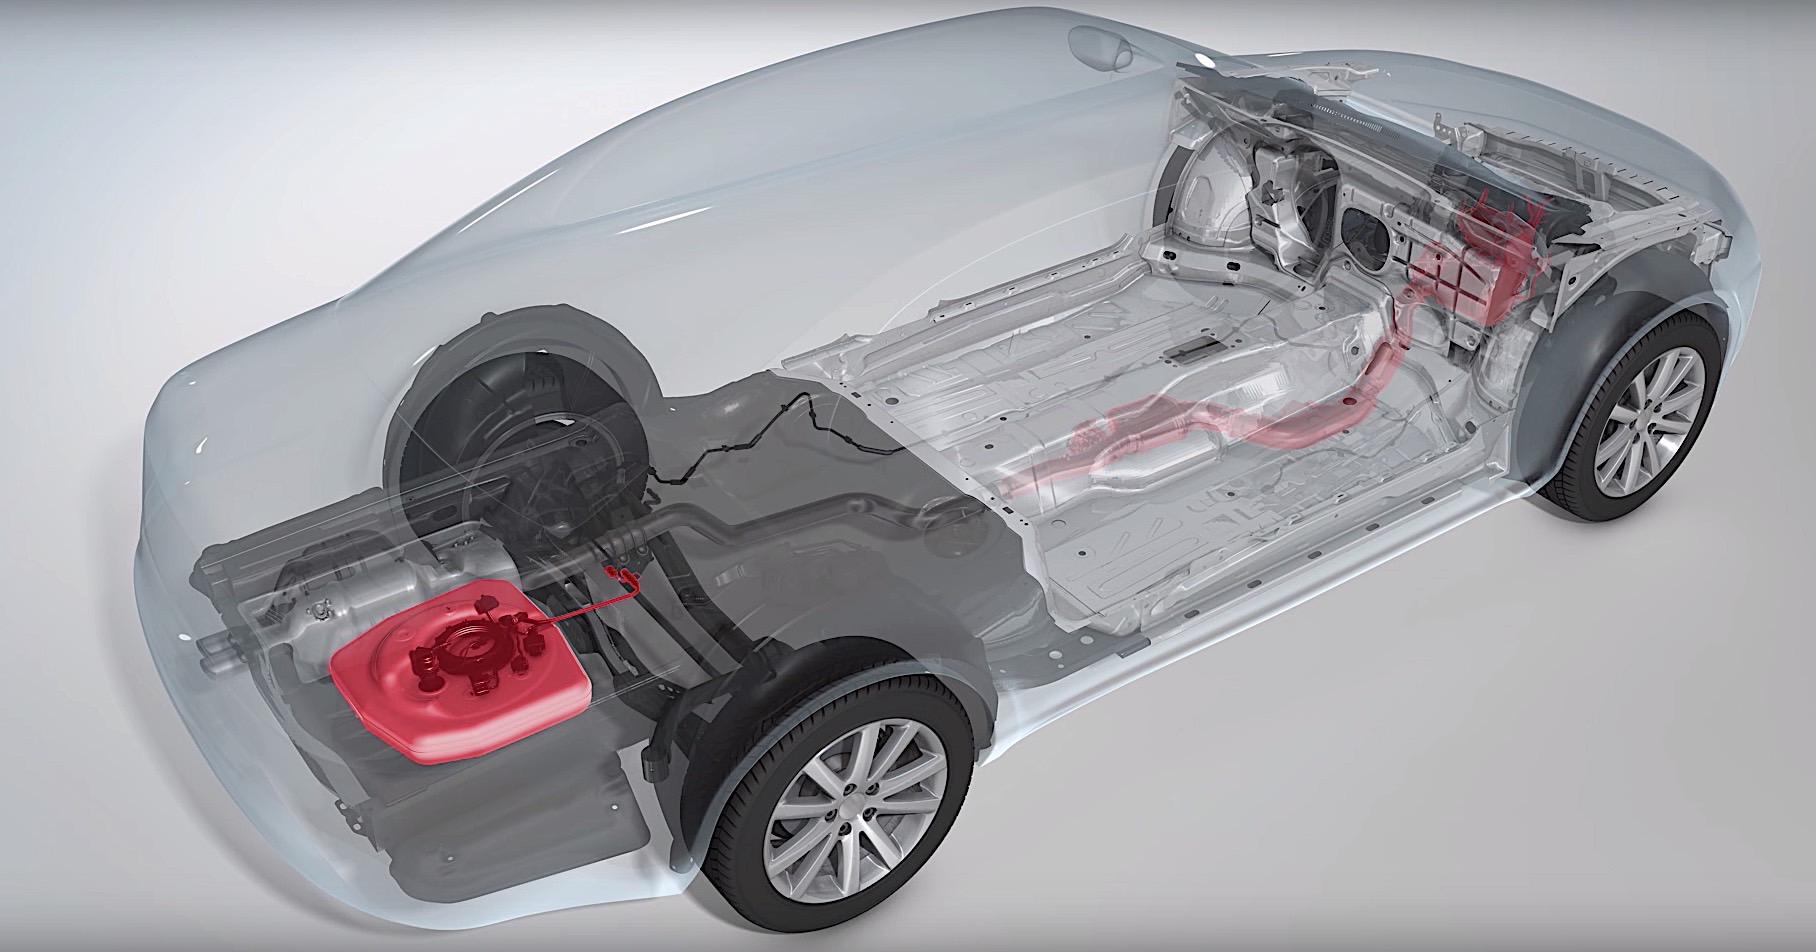 Volkswagen Slams Use of Retrofit Hardware for Euro 5 Cars as